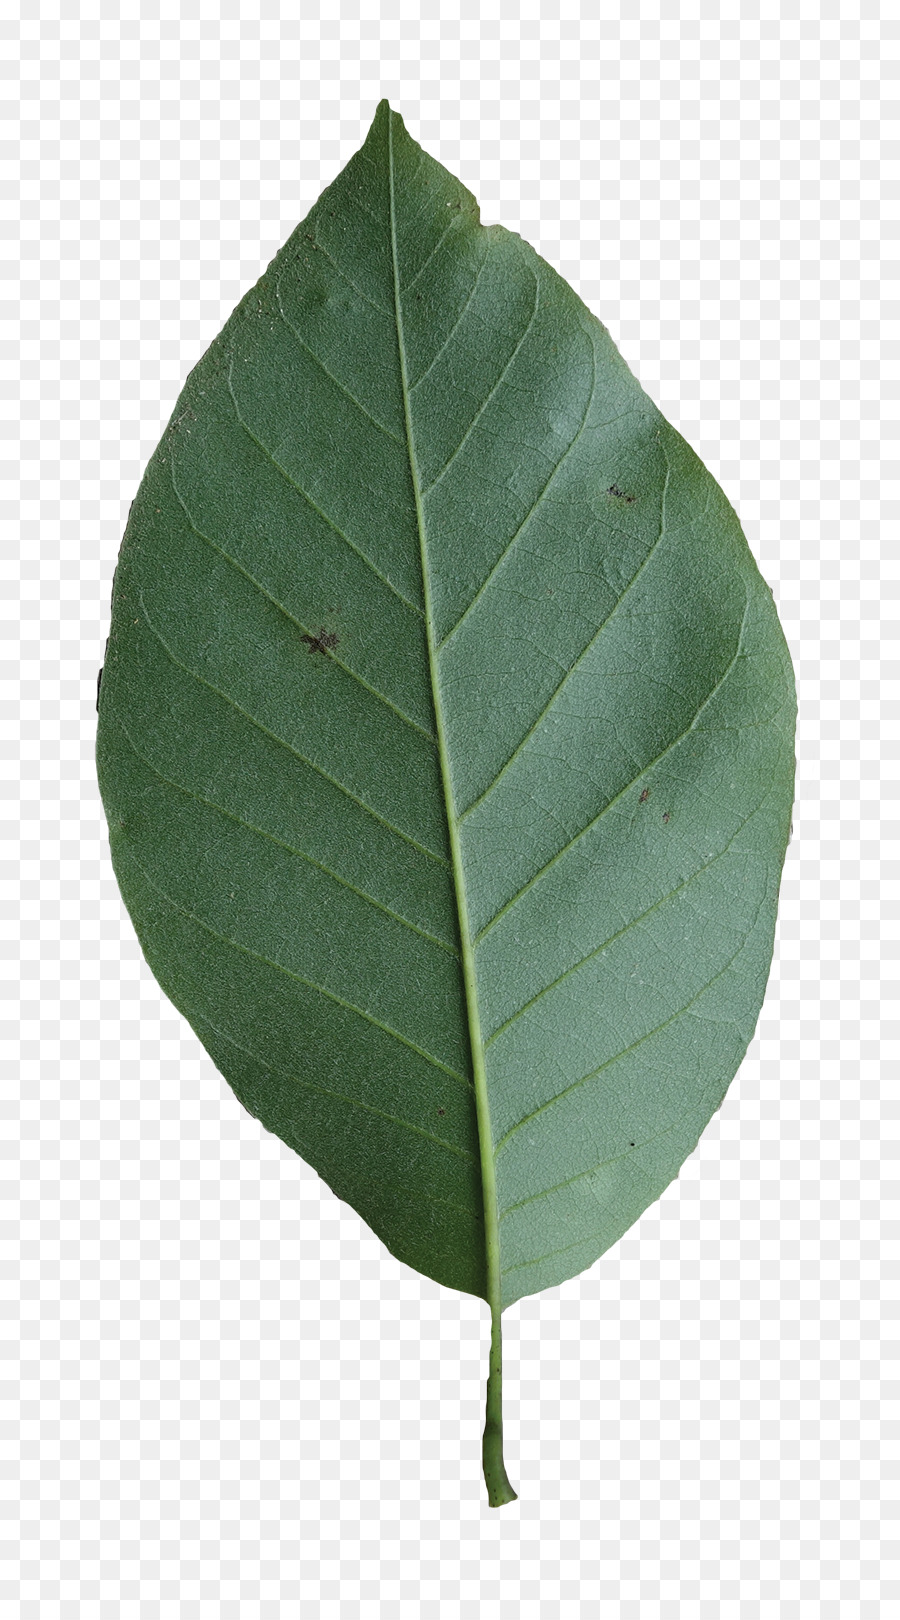 Leaf Magnolia Tree Leaves Turning Yellow Png Download 8001604